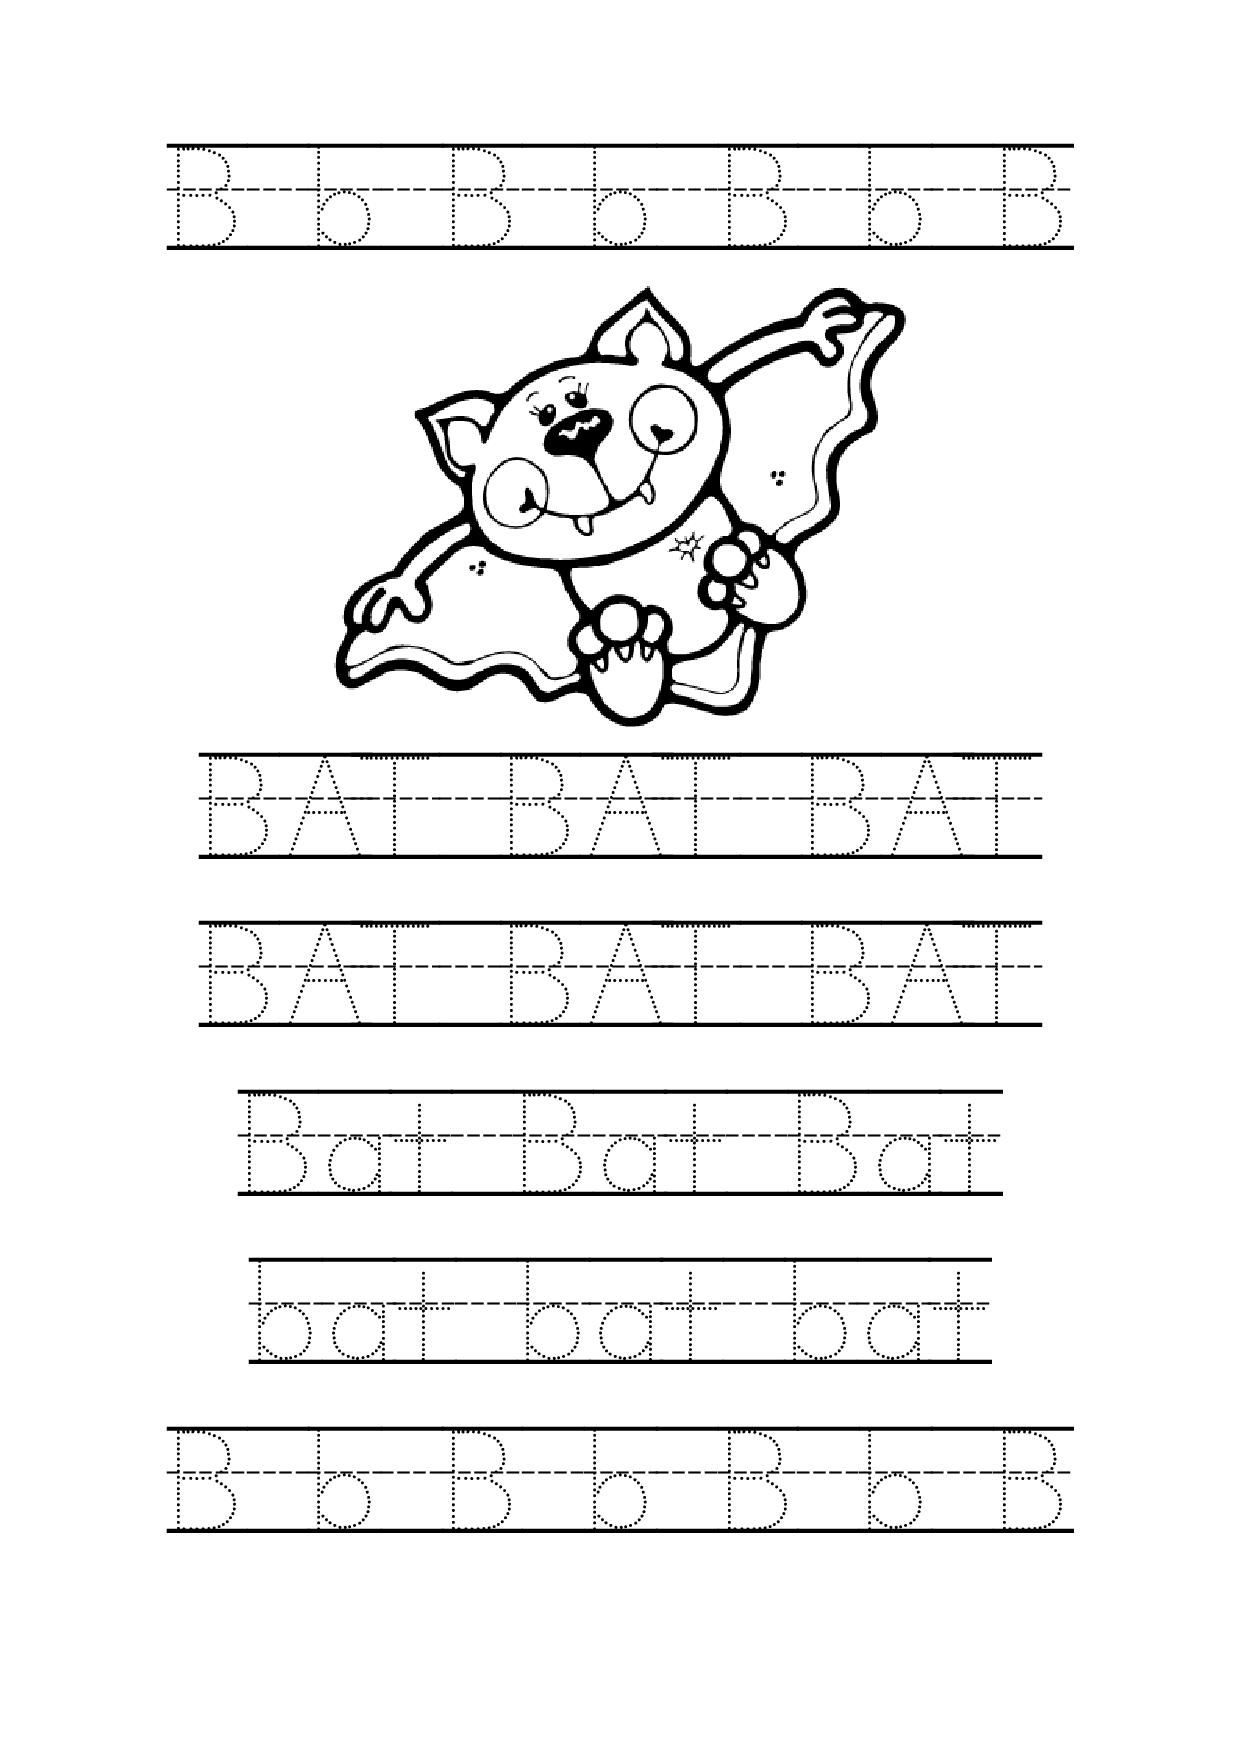 Nocturnal Animal Preschool Worksheet